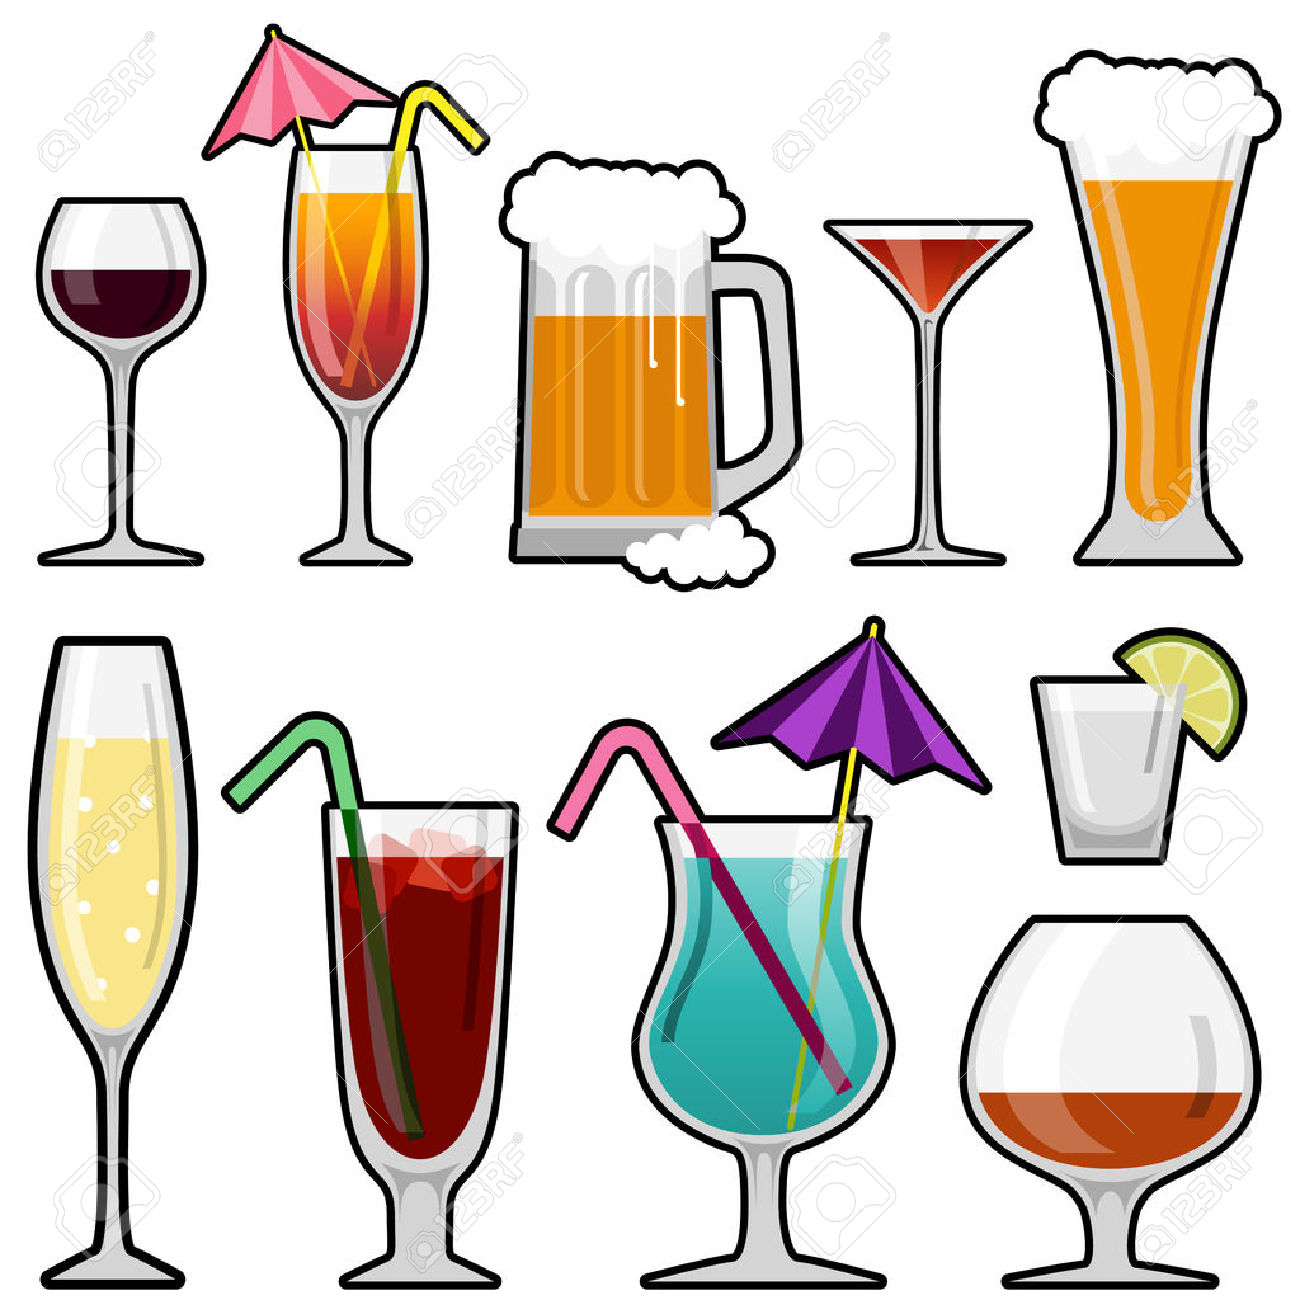 Alcohol Glass Royalty Free Cliparts, Vectors, And Stock.